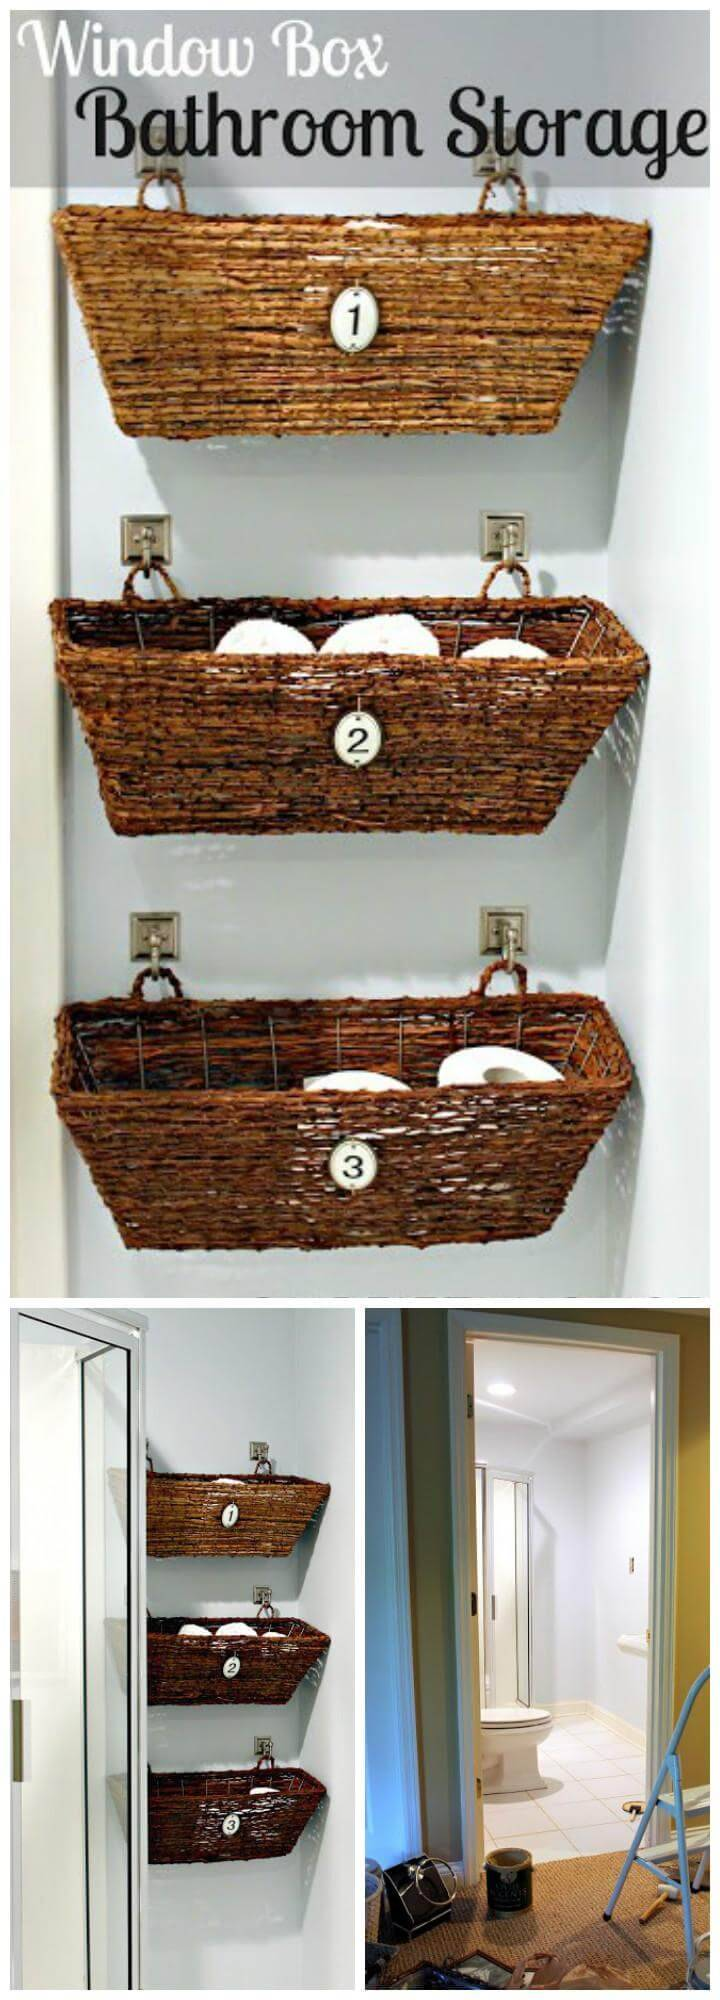 self-made and installed window box bathroom shelves